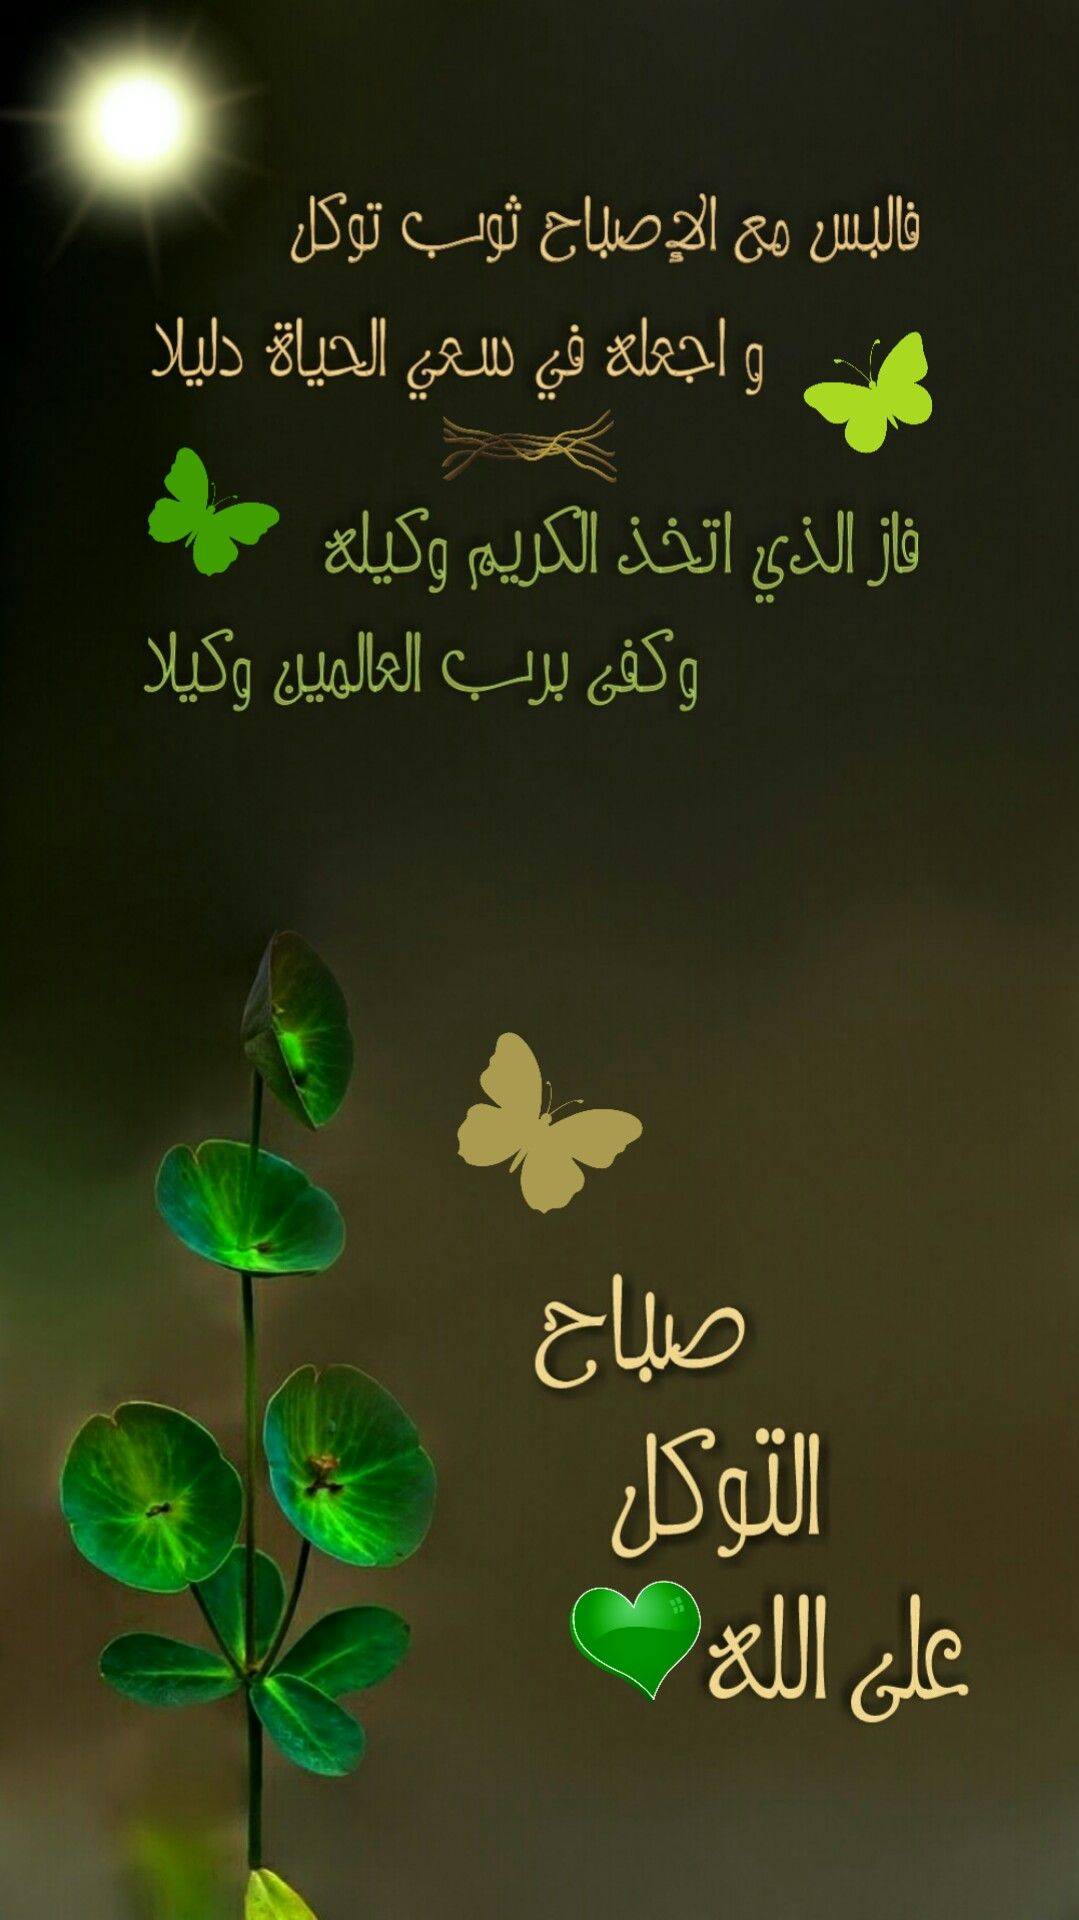 Pin By Iman Yousef On صباحيات و مسائيات Good Morning Images Good Morning Messages Morning Images